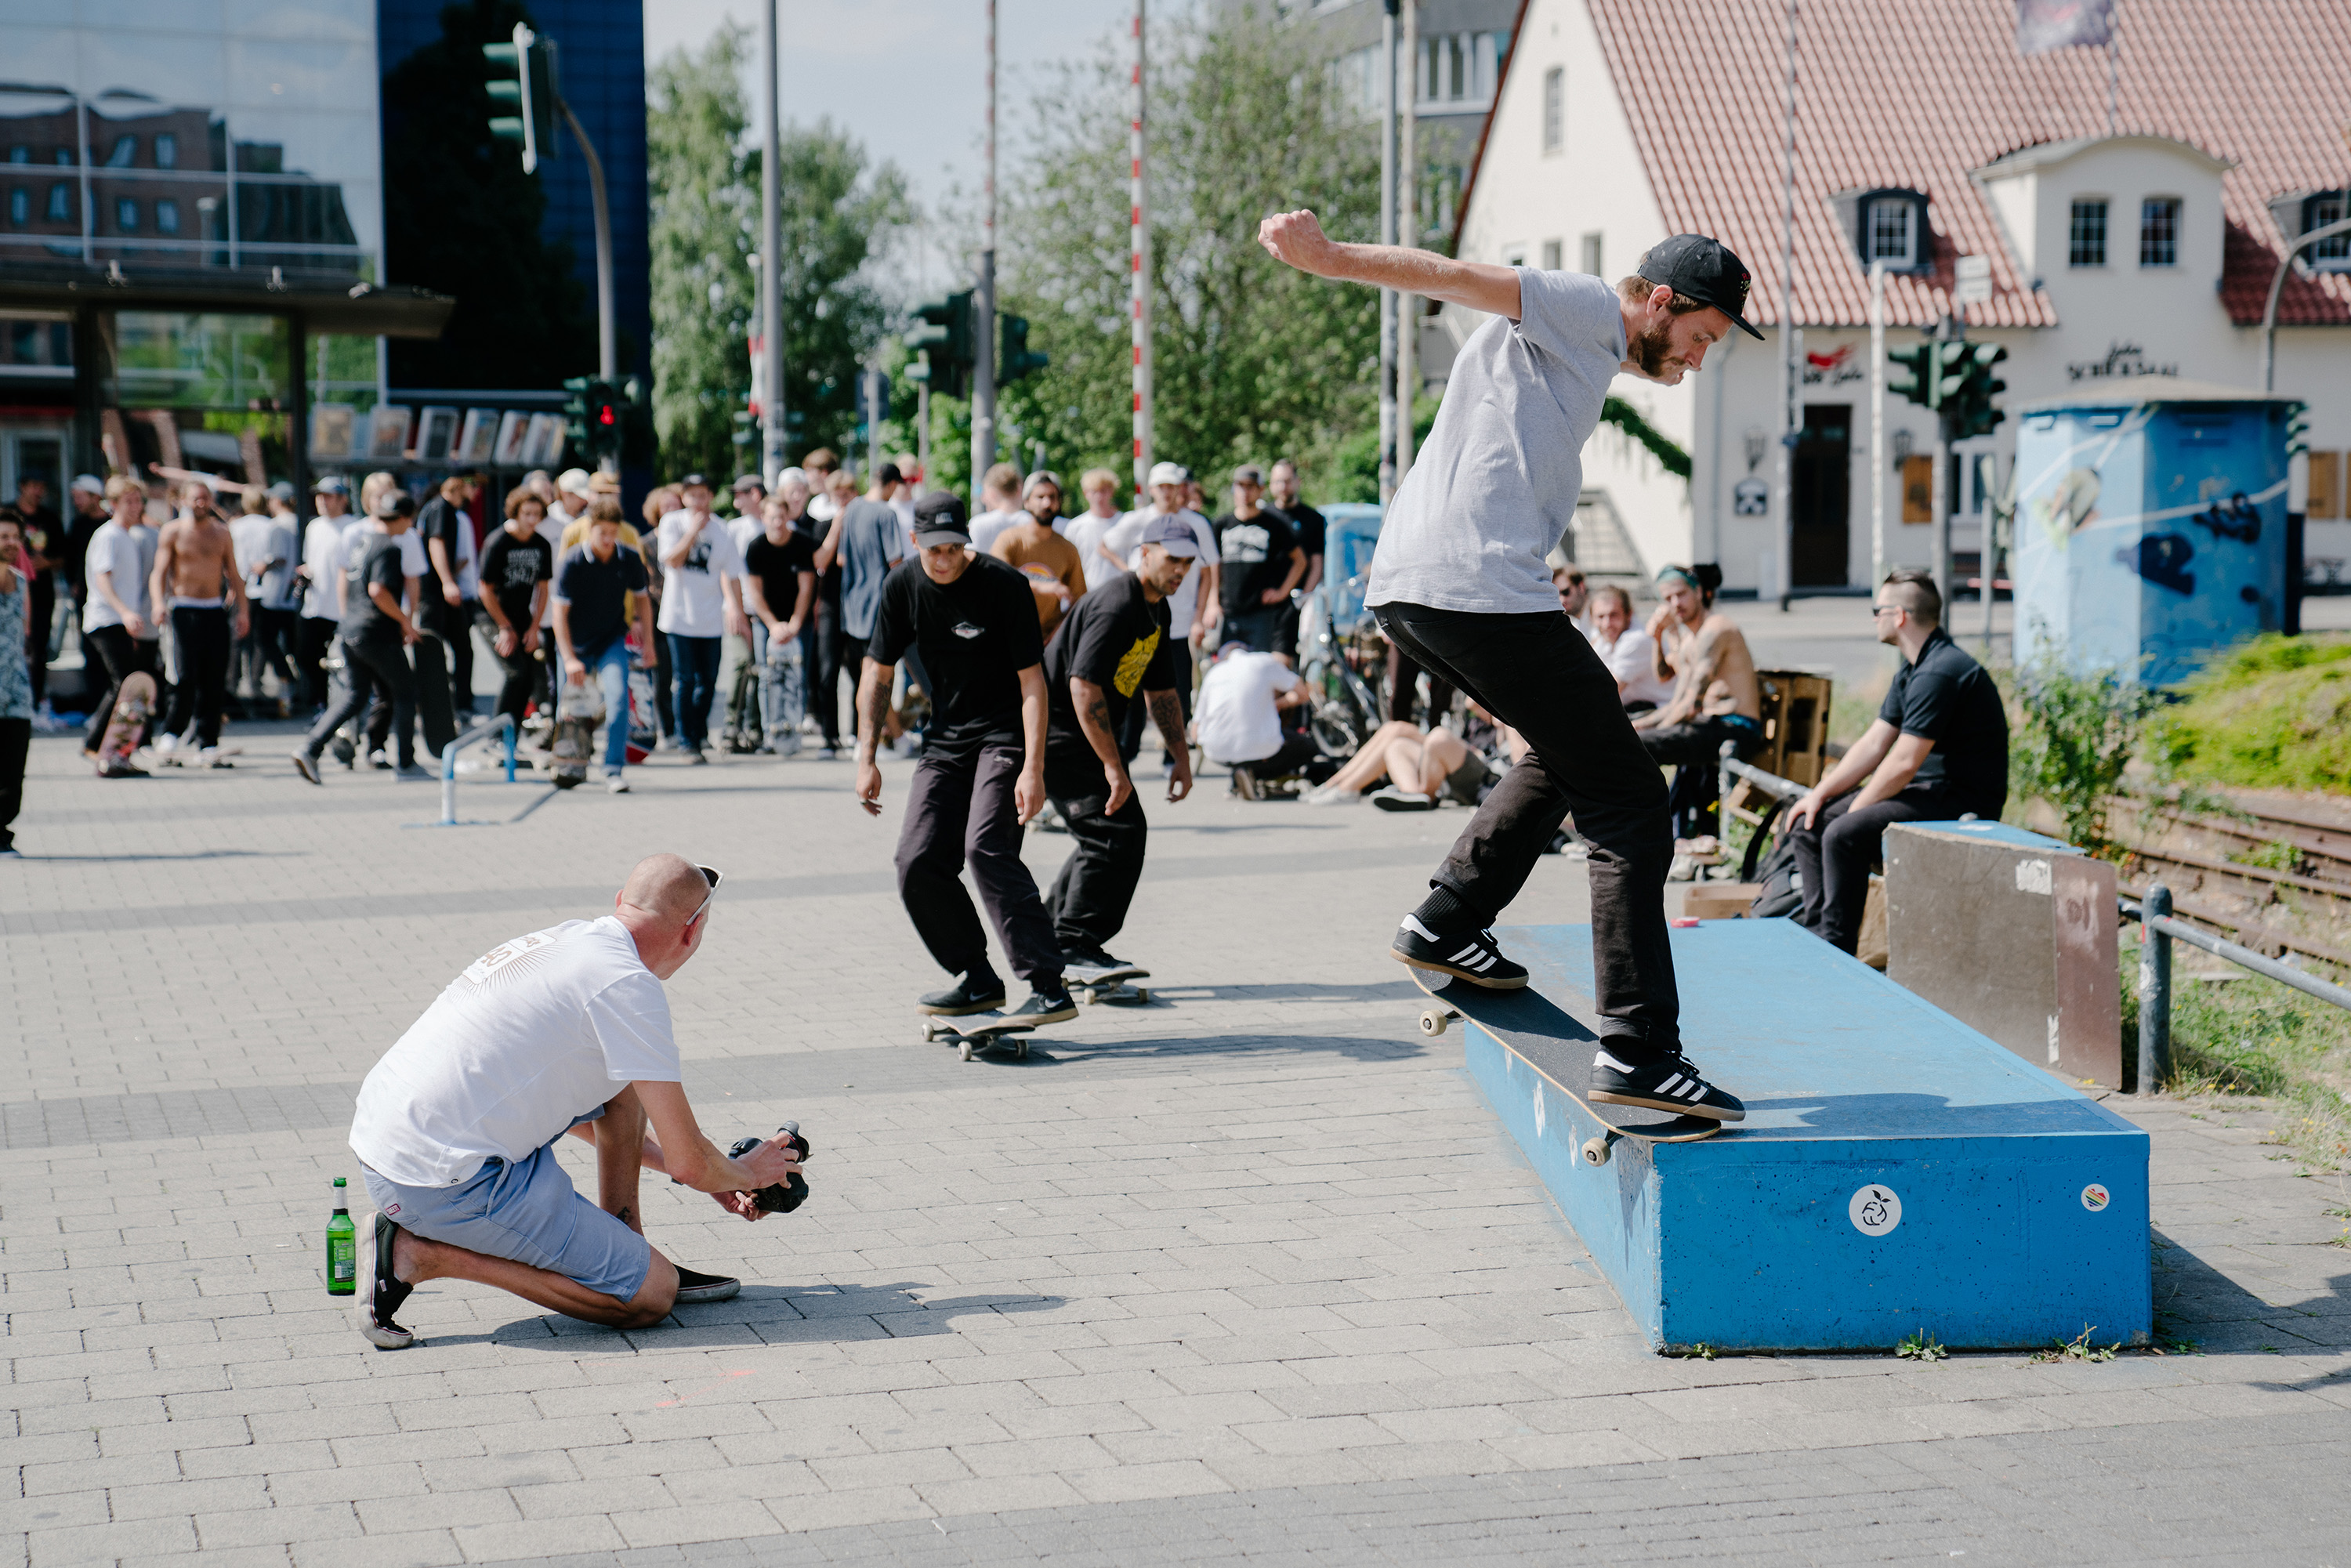 Erik_Gross_Nollie_FS_Crooks_neu.jpg